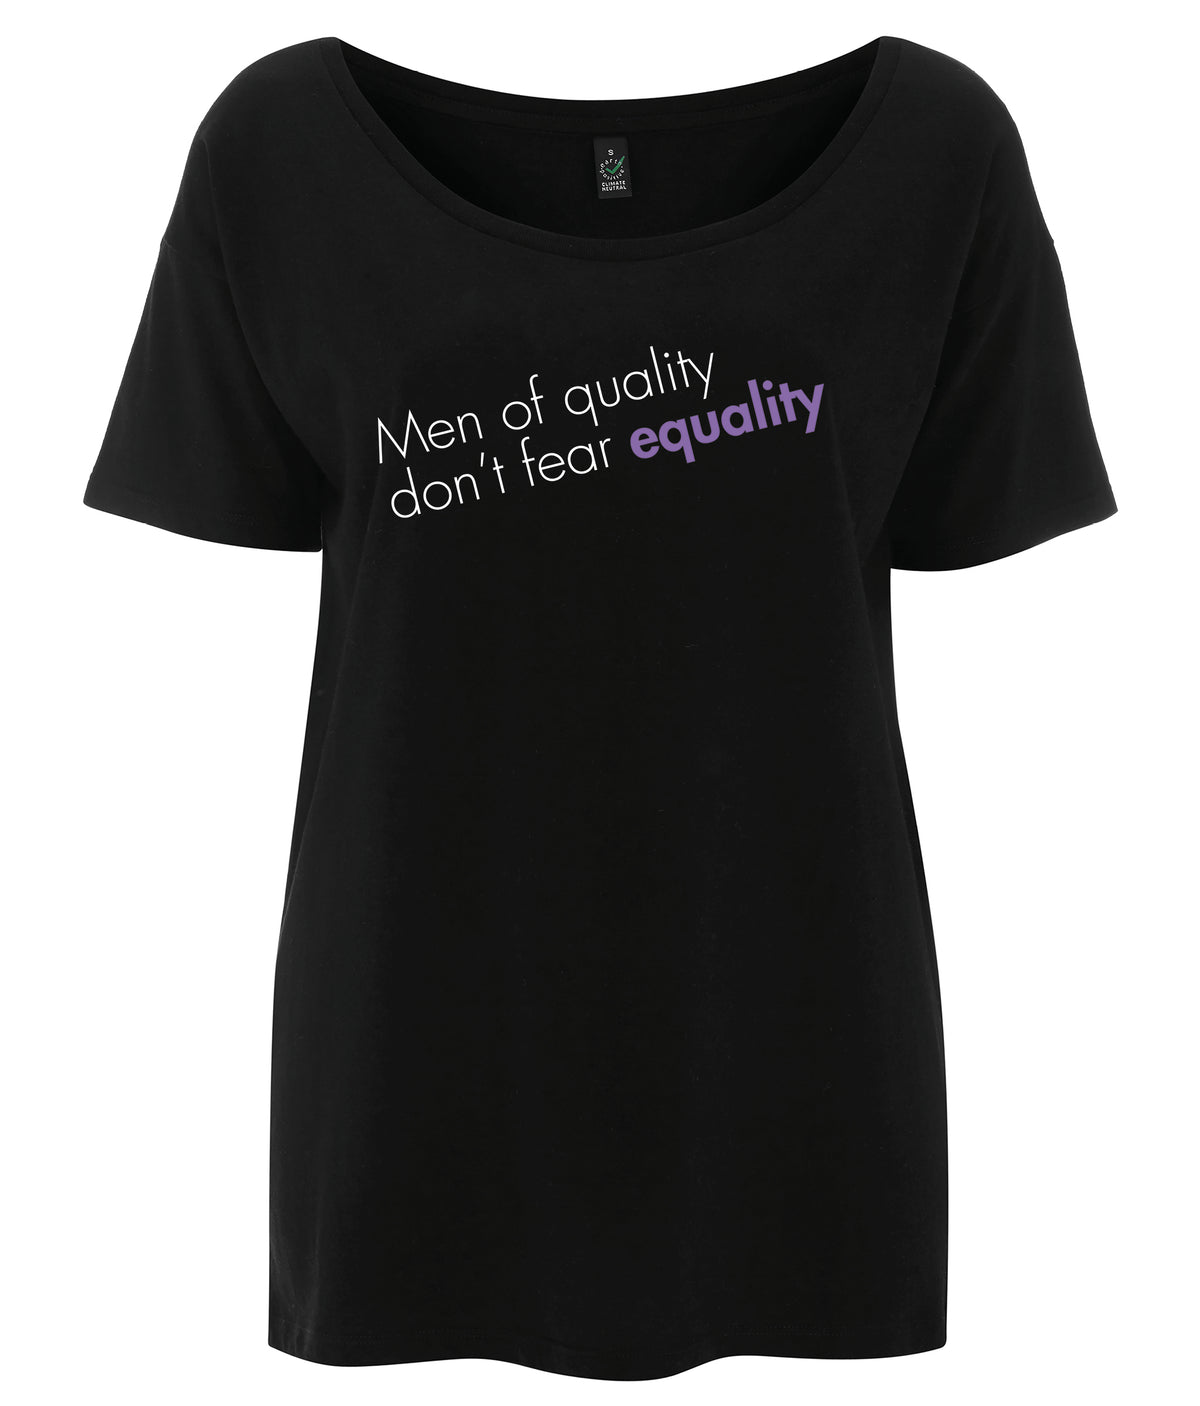 Men Of Quality Don't Fear Equality Tencel Blend Oversized Feminist T Shirt Black